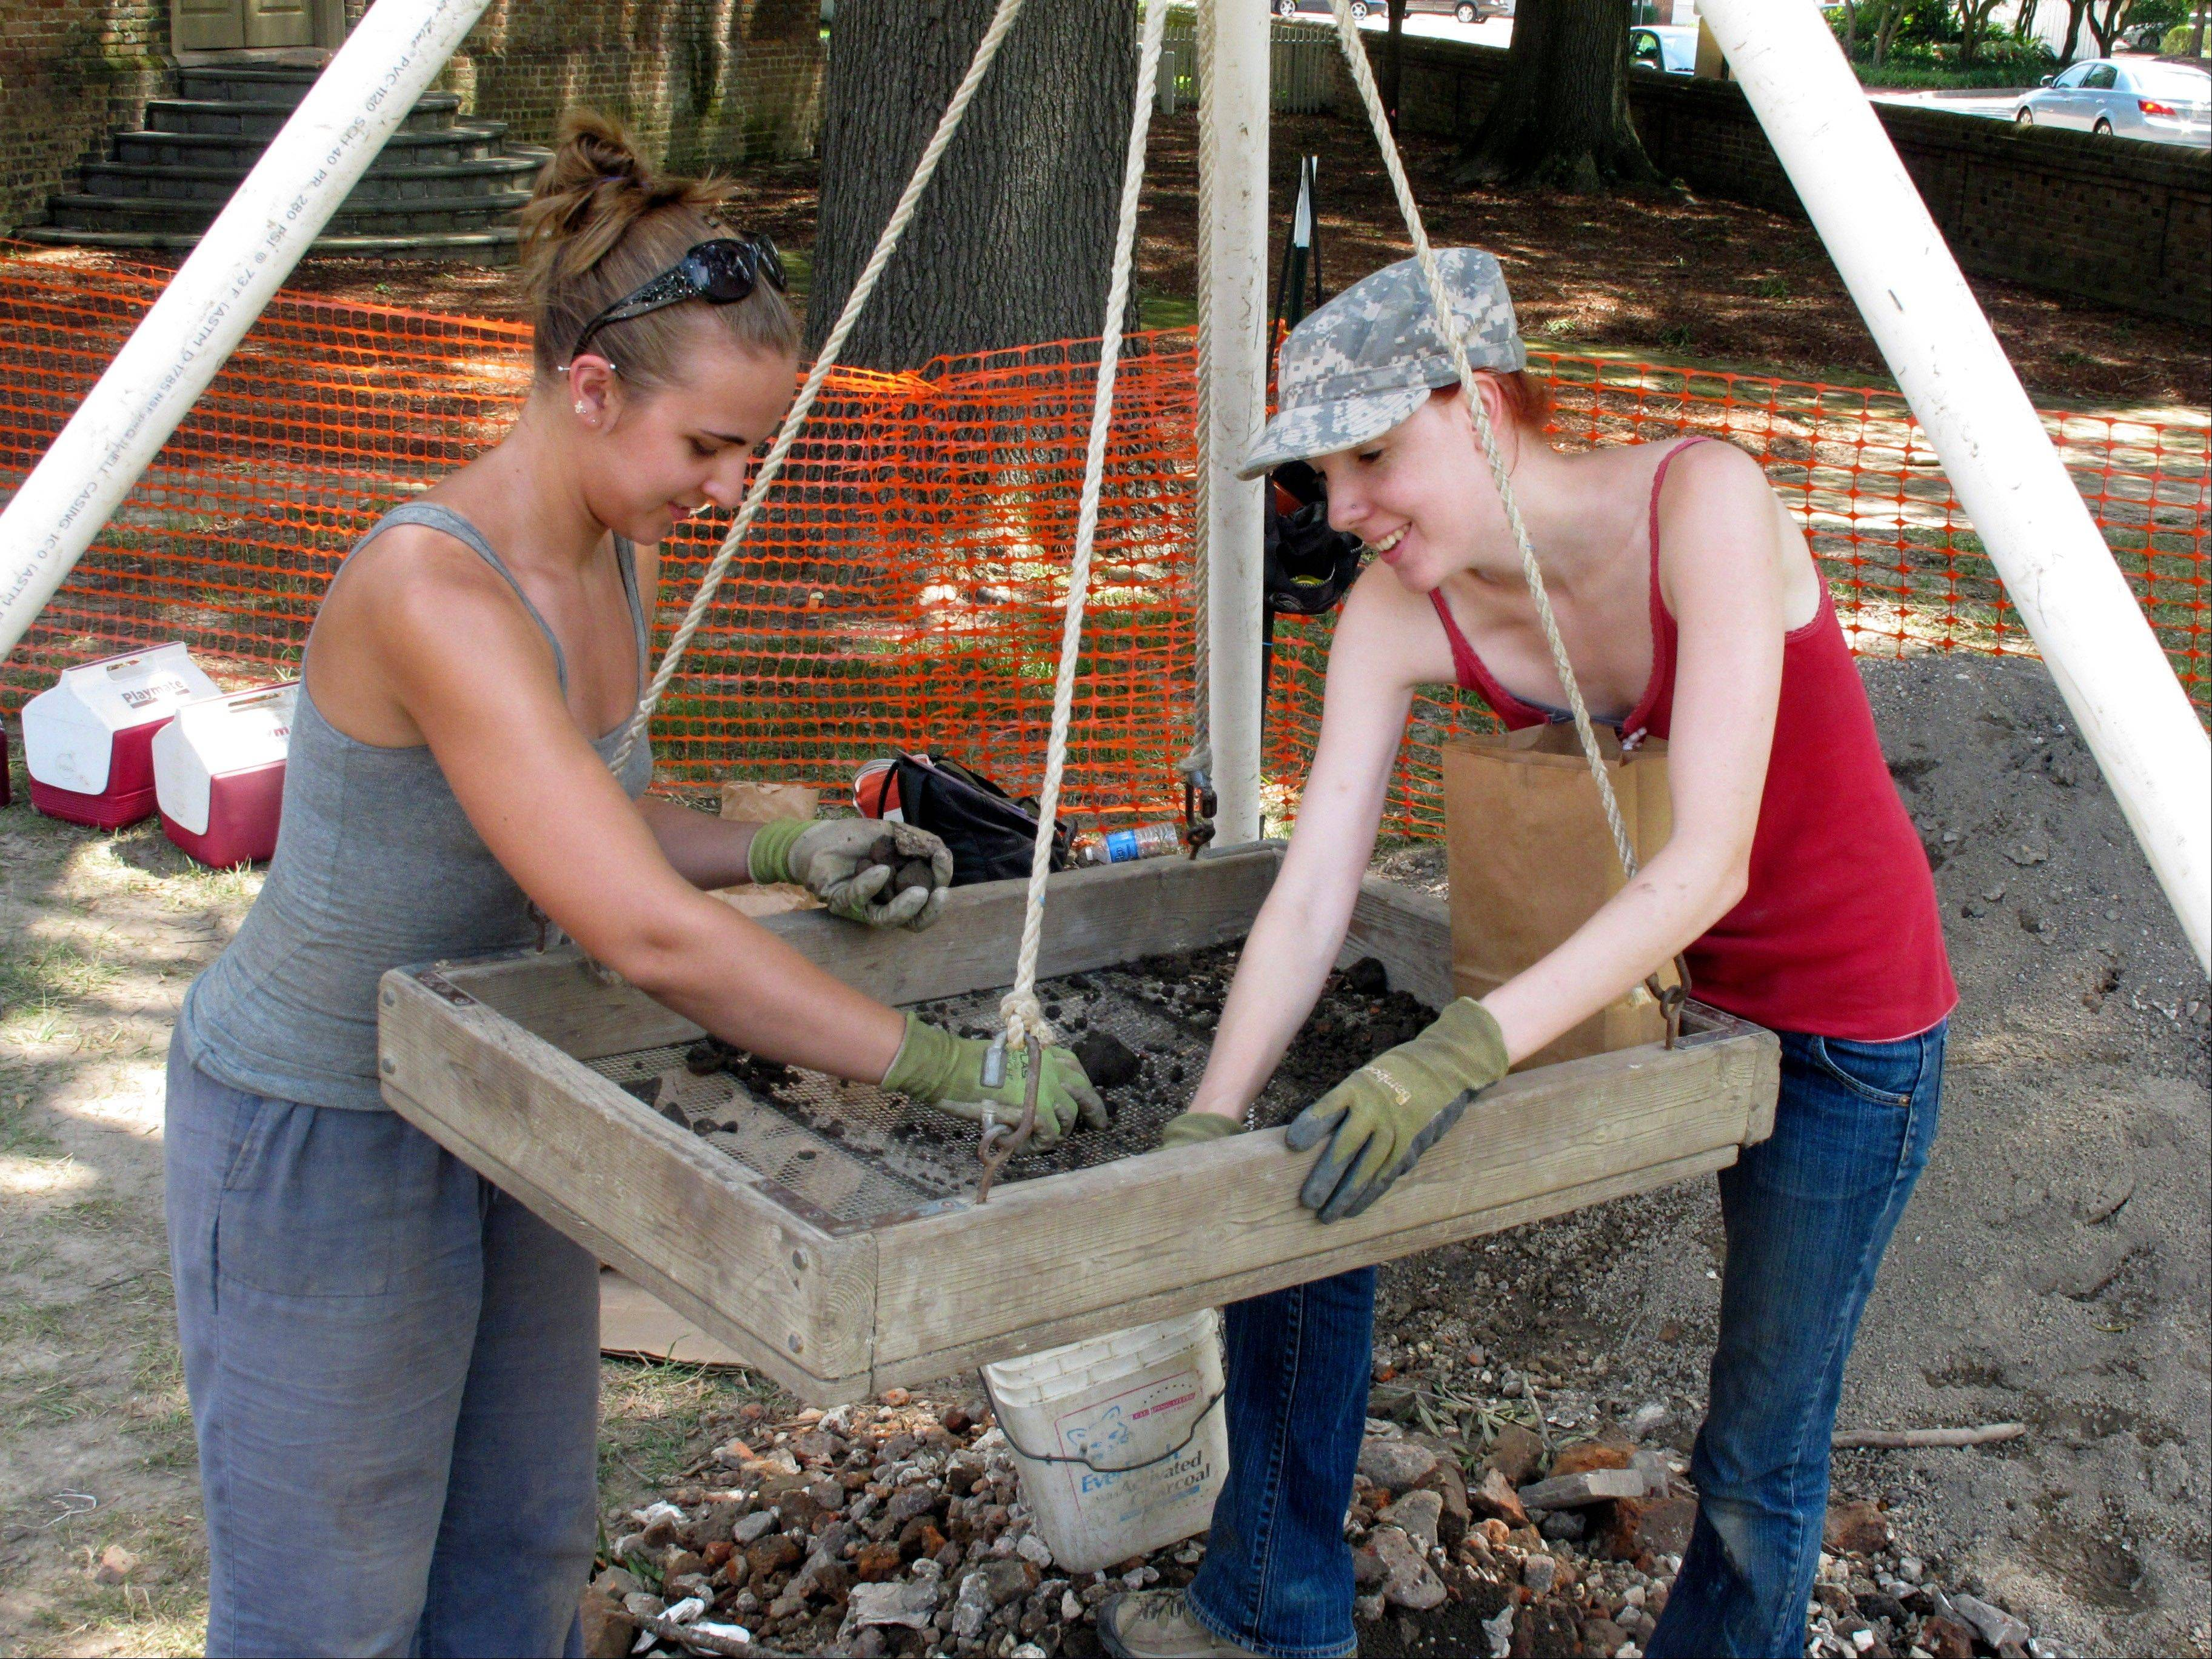 Lauran Kellam, right, and Rachael Hillmar, left, of the William and Mary Center for Archaeological Research sifts through soil dug up from a Civil War excavation site on the campus of the College of William and Mary in Williamsburg, Va.